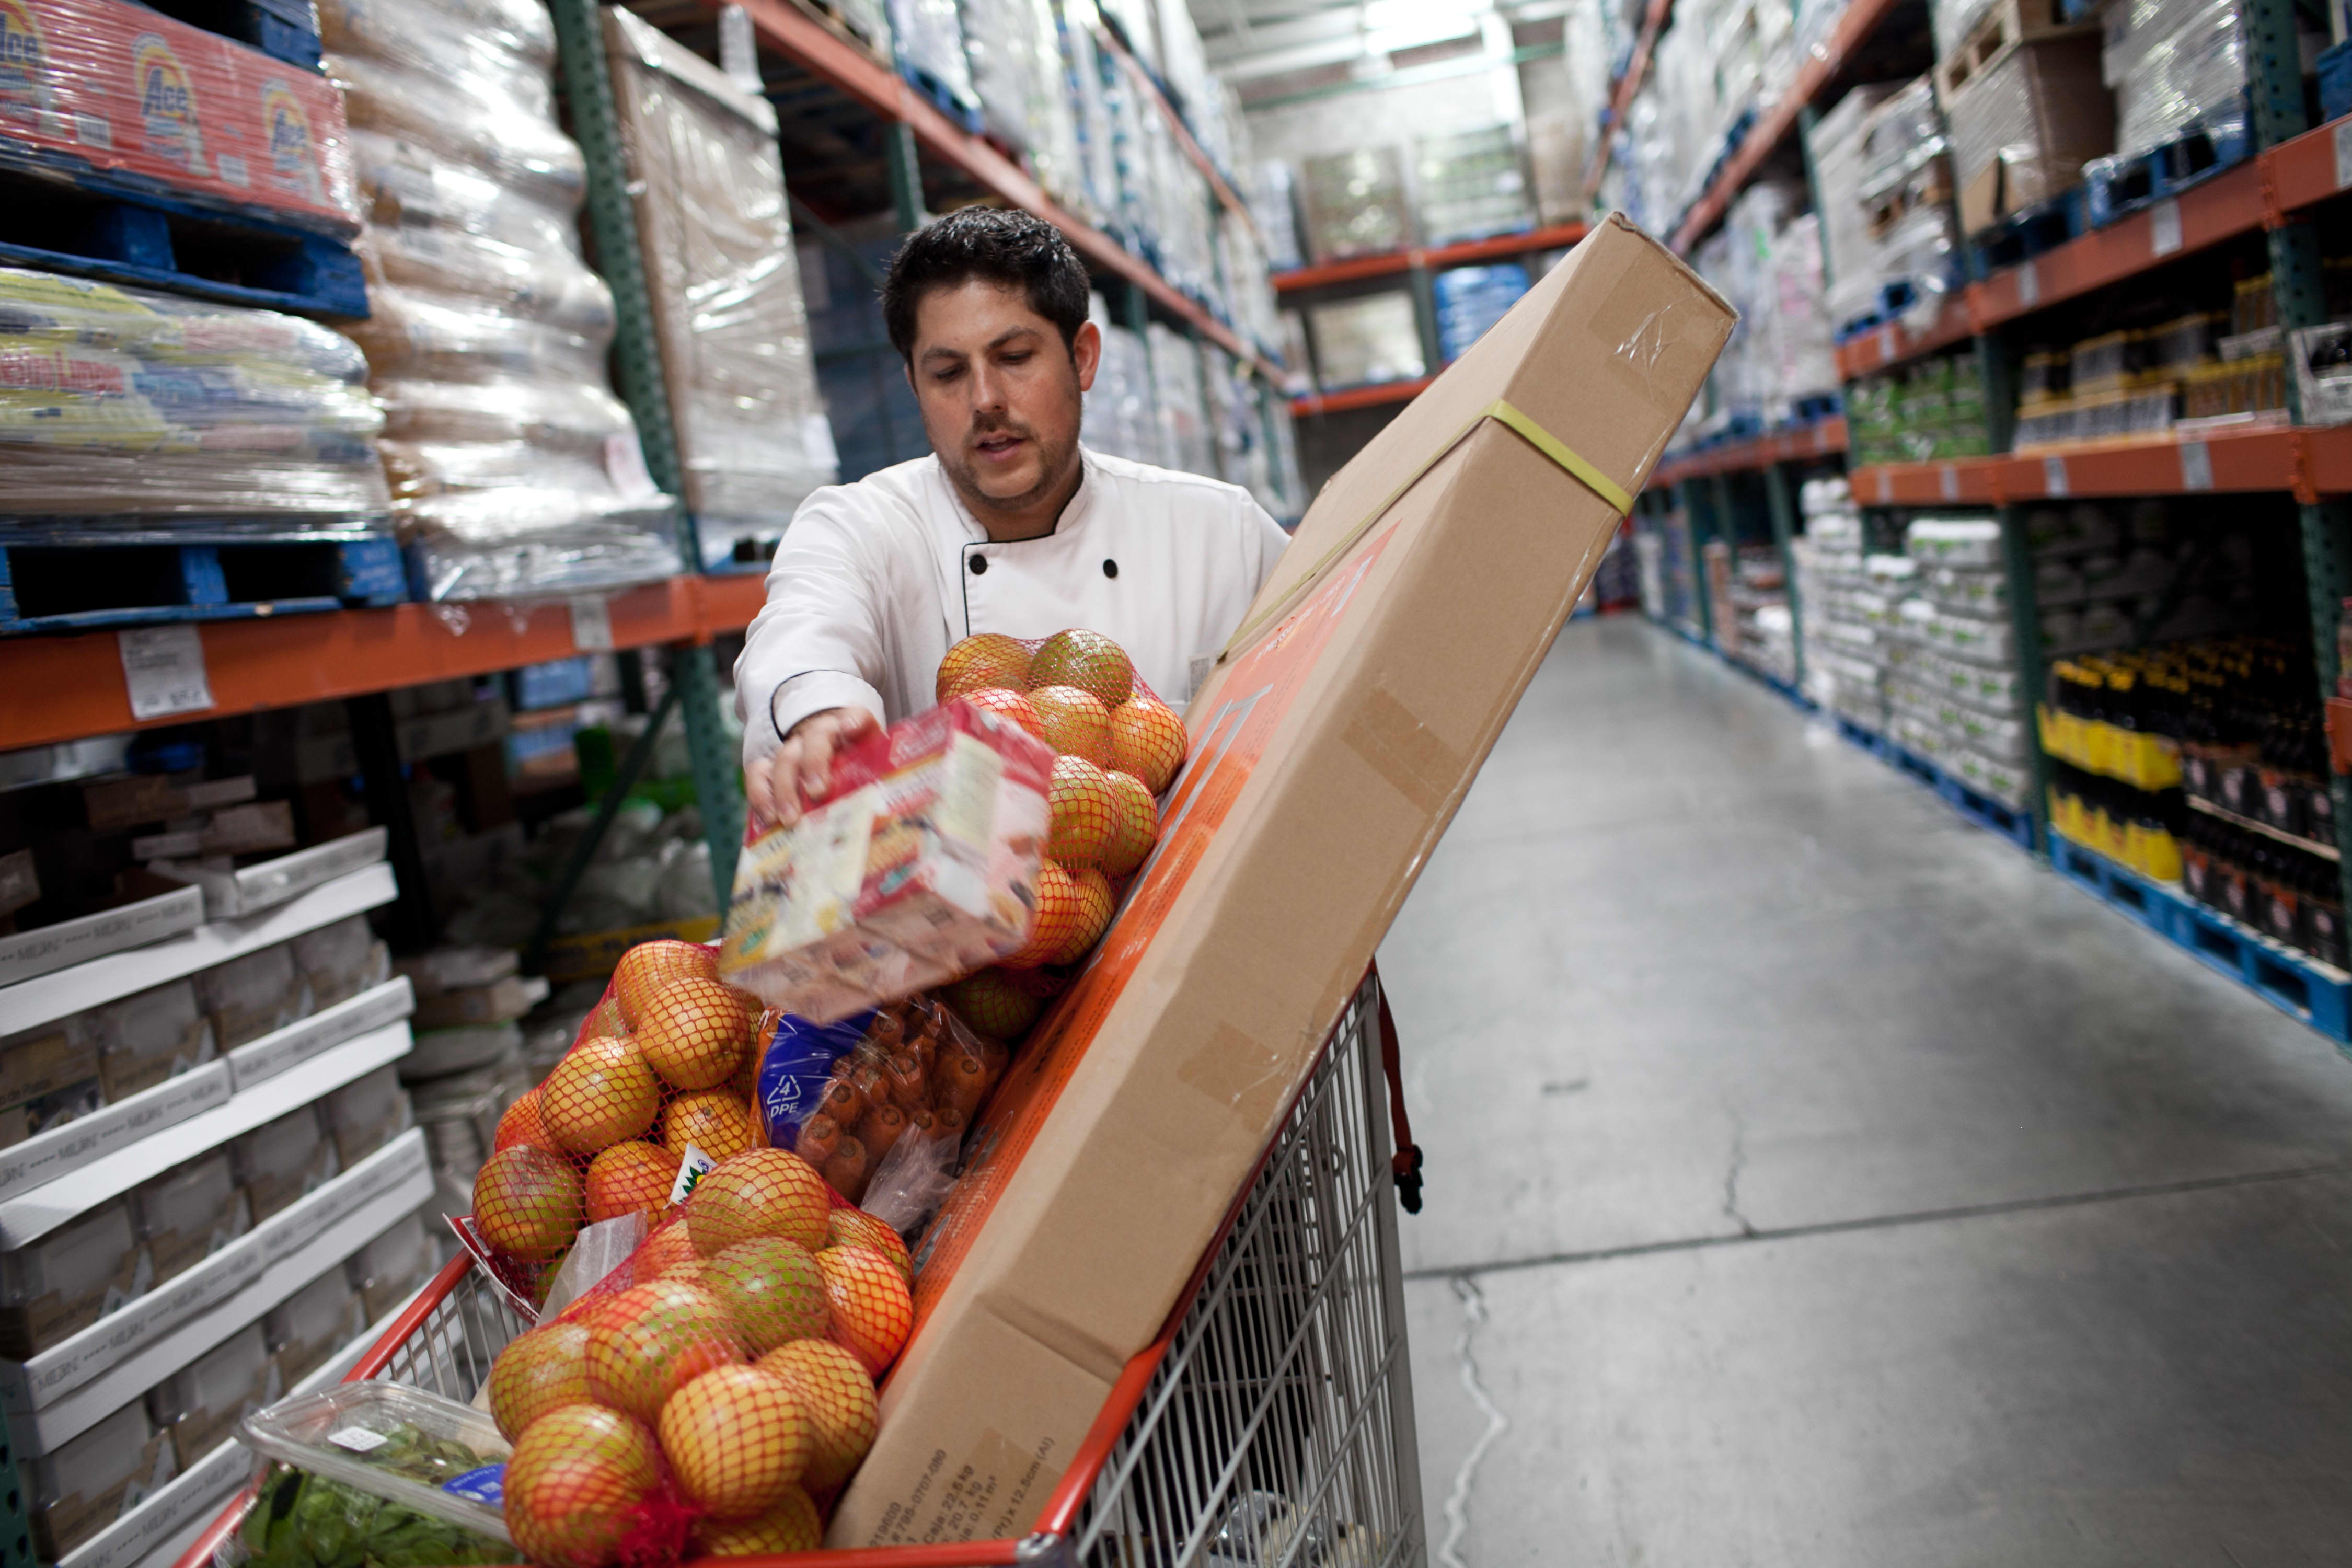 Don't make these 7 costly mistakes when shopping at Costco